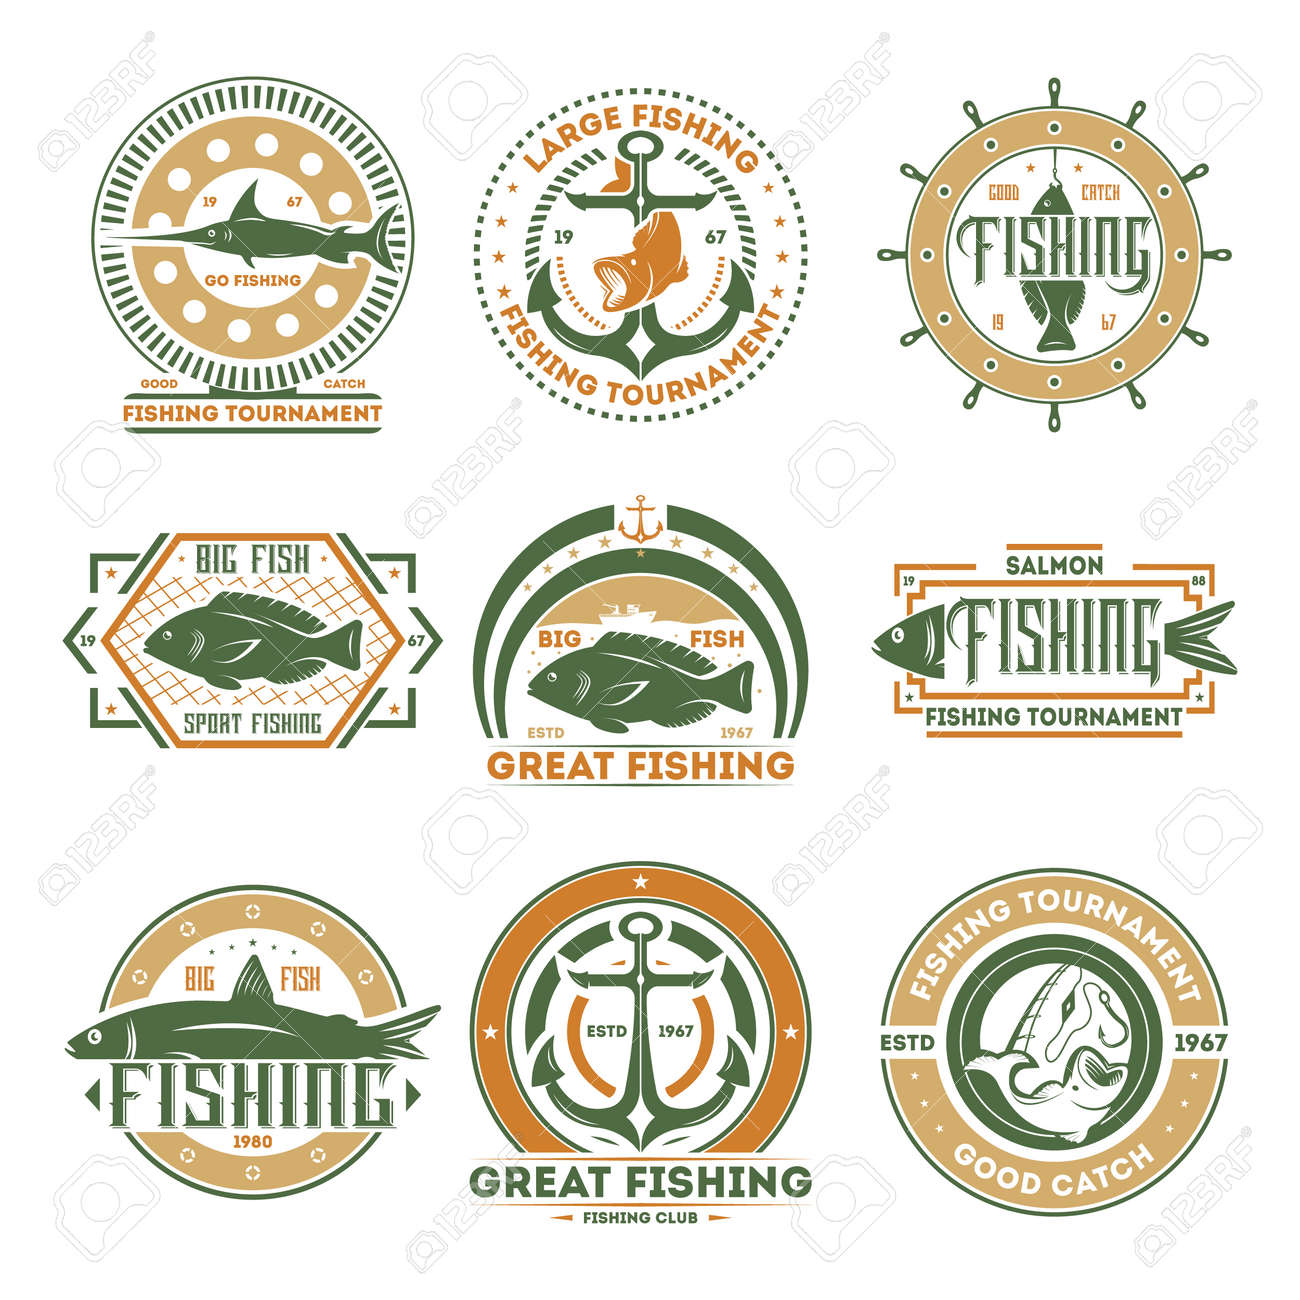 Great Fishing Tournament Vintage Isolated Label Vector Illustration